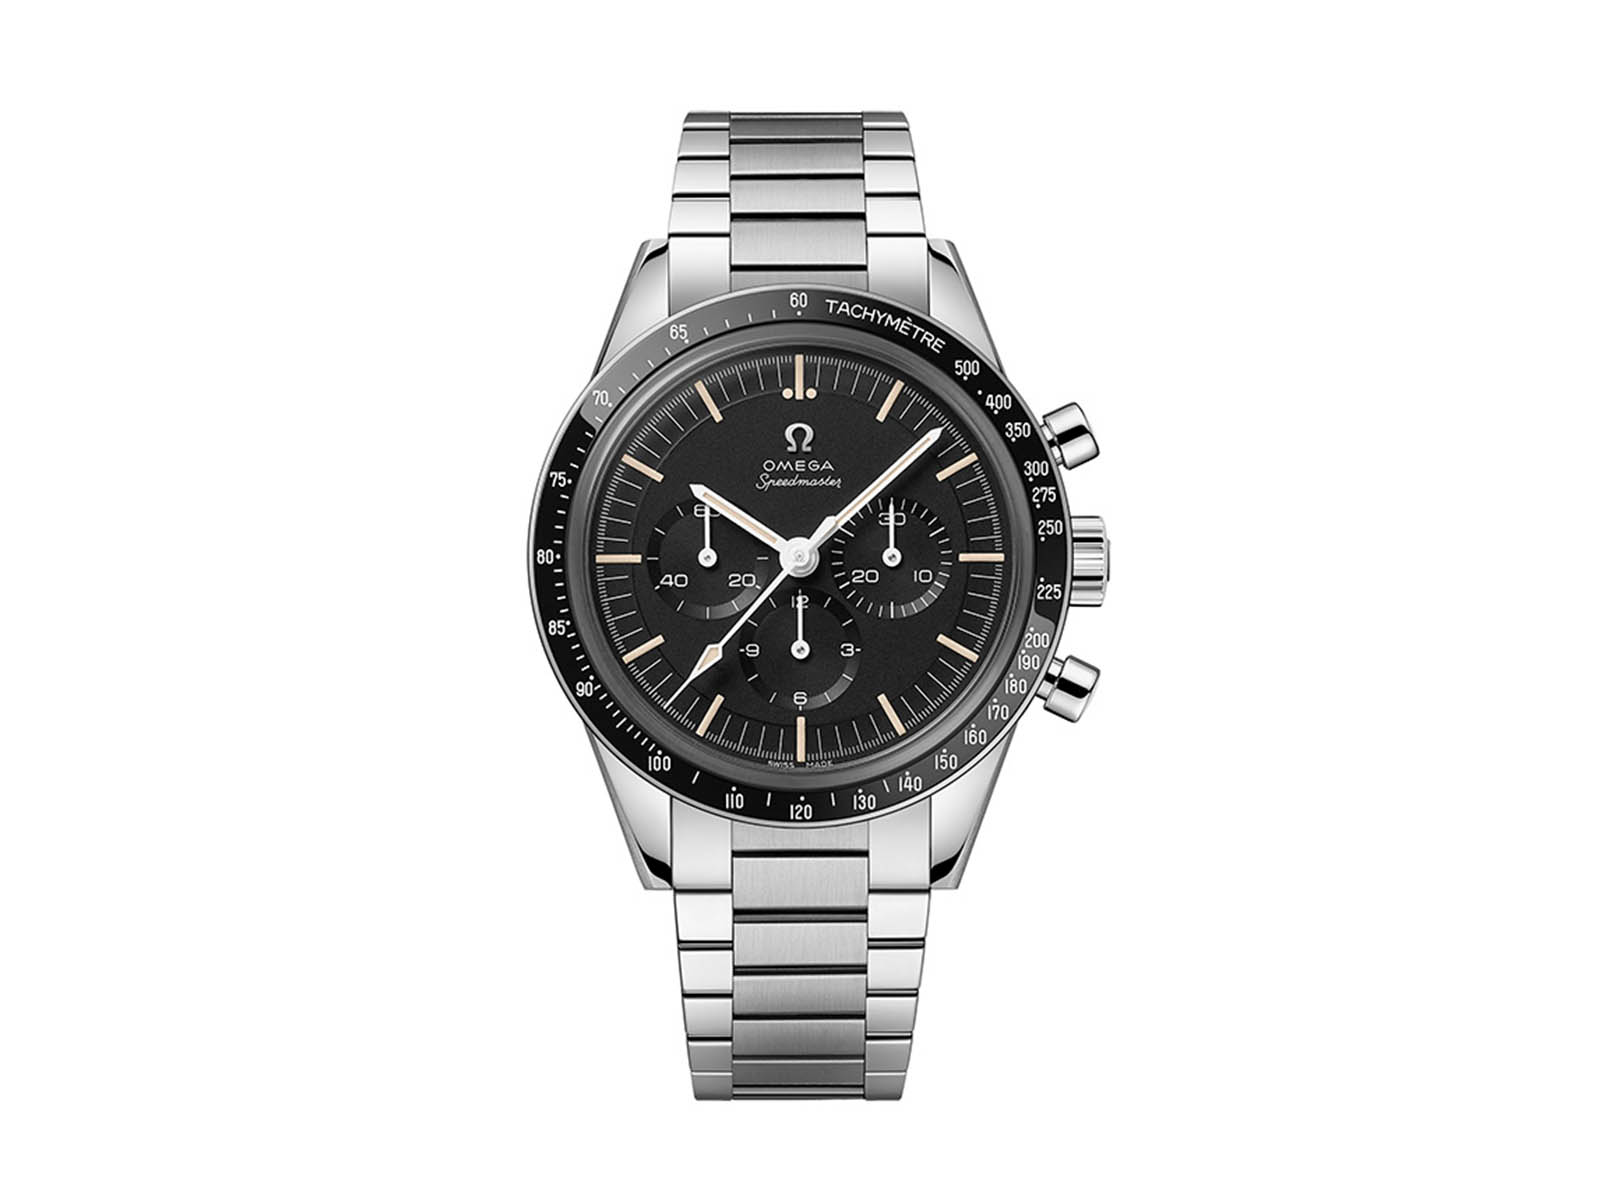 311-30-40-30-01-001-omega-speedmaster-moonwatch-chronograph-39-7-mm-2.jpg